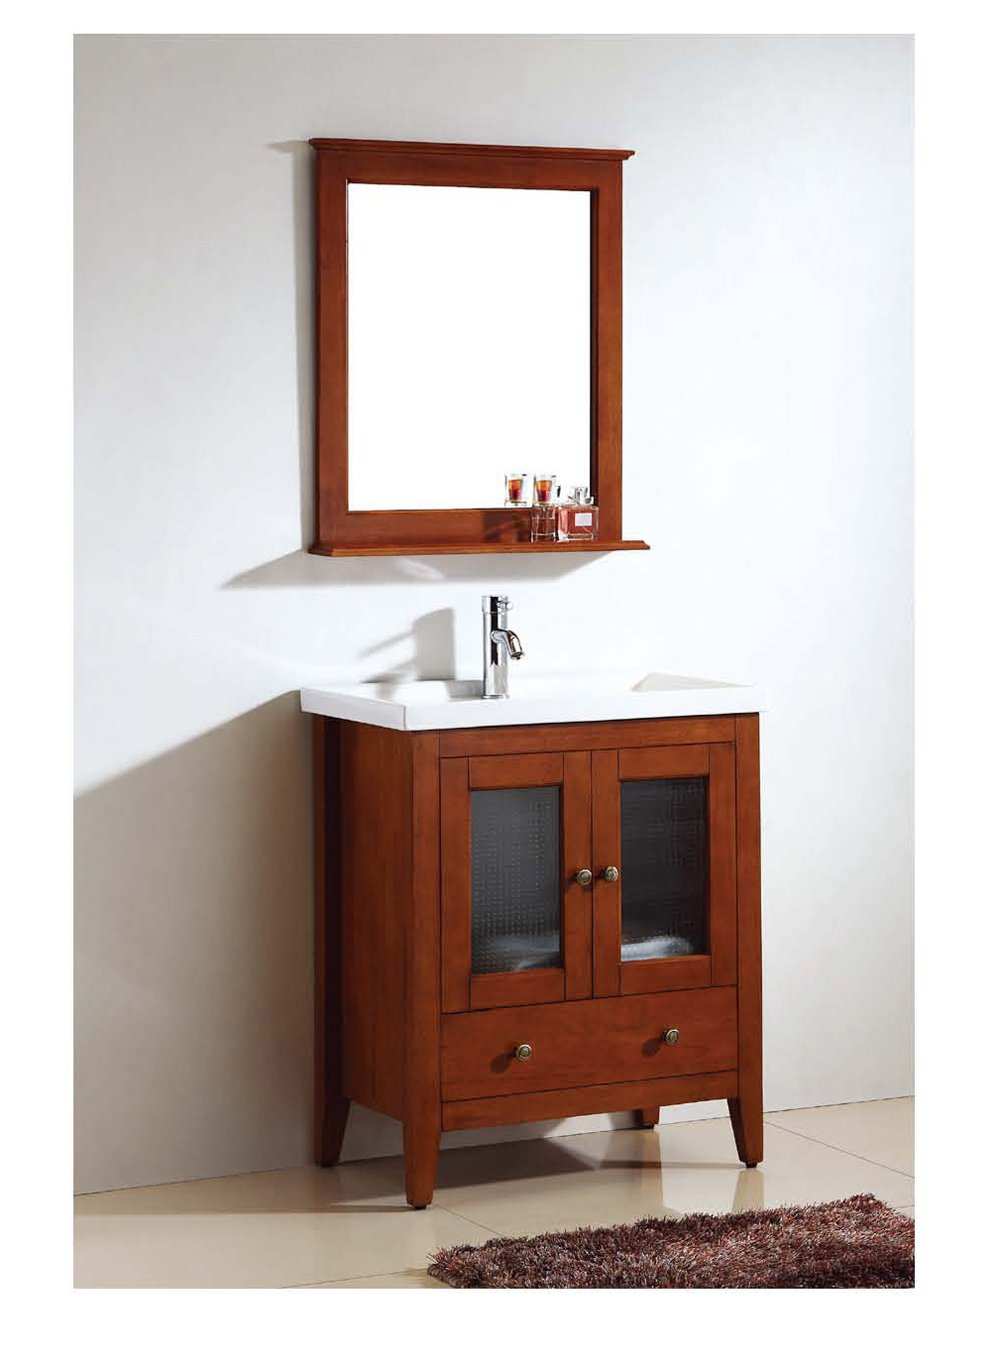 Dawn RAM240429-04 Solidwood and Plywood Frame Mirror with Shelf, Teak Finish - Vanity Cabinet Sets - Mirror Finish: Teak Detailed Framed - bathroom-vanities, bathroom-fixtures-hardware, bathroom - 61EzNJtwc0L -